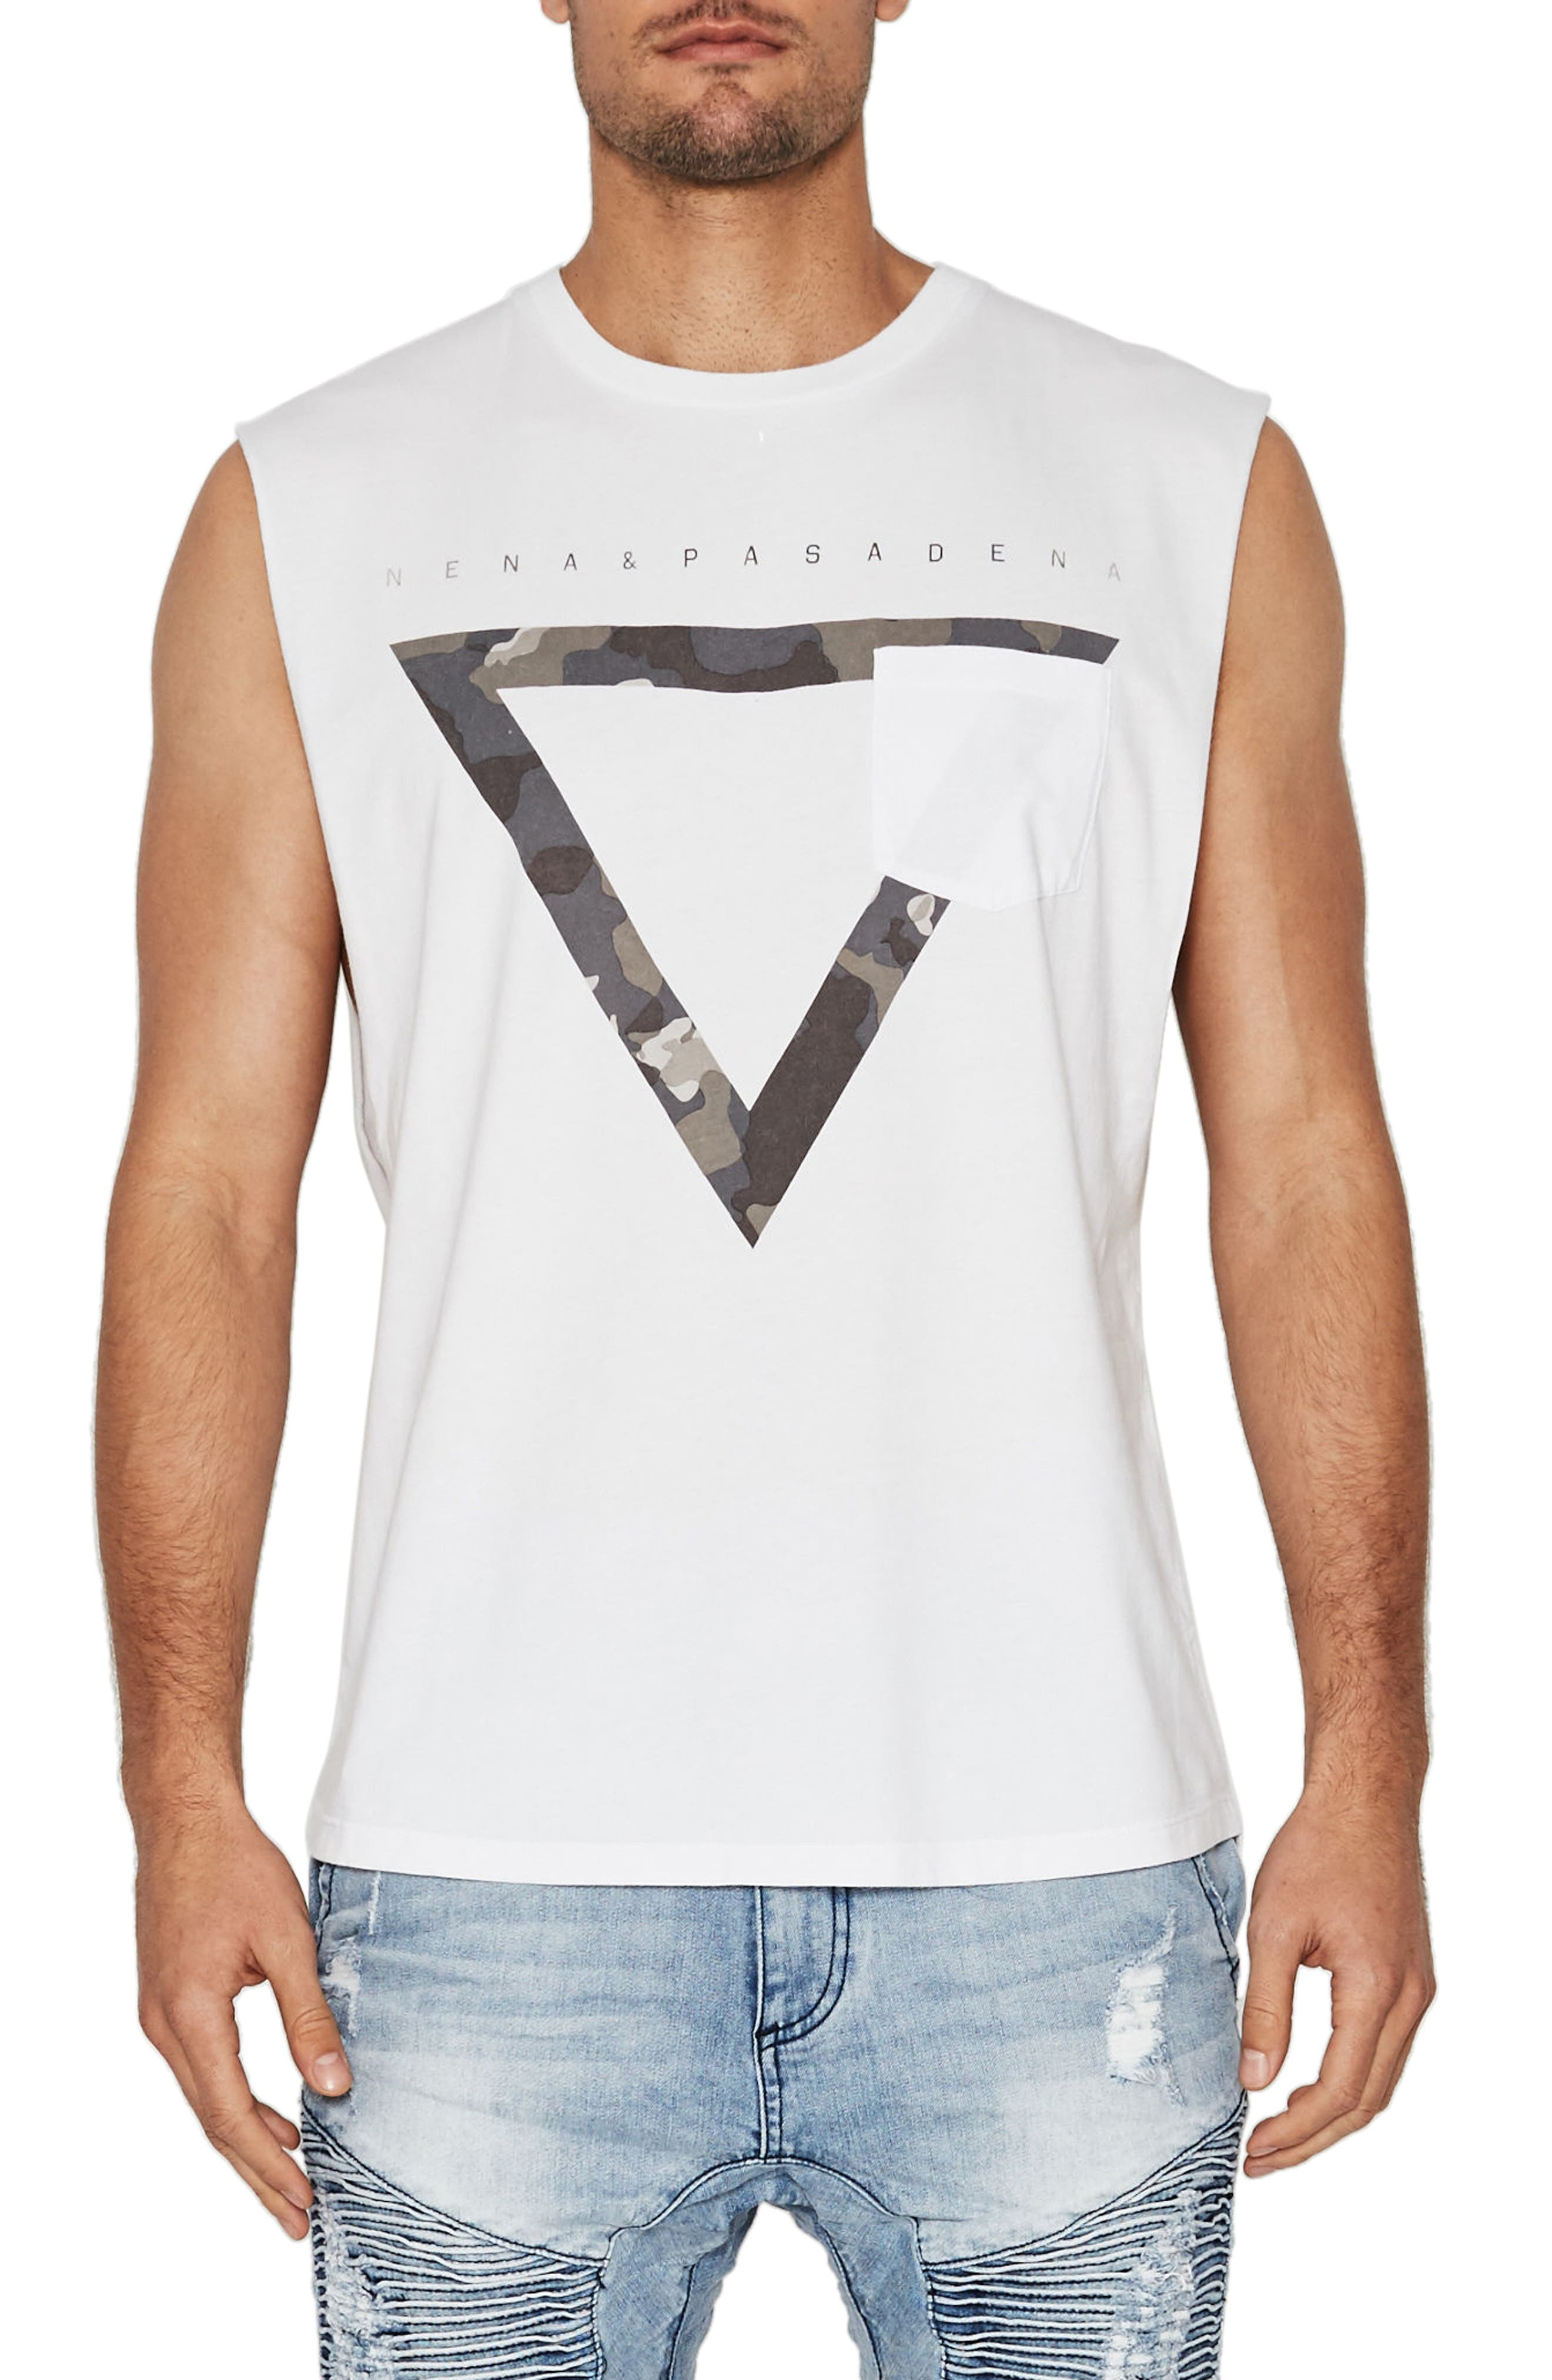 NXP Forgotten Sleeveless T-Shirt